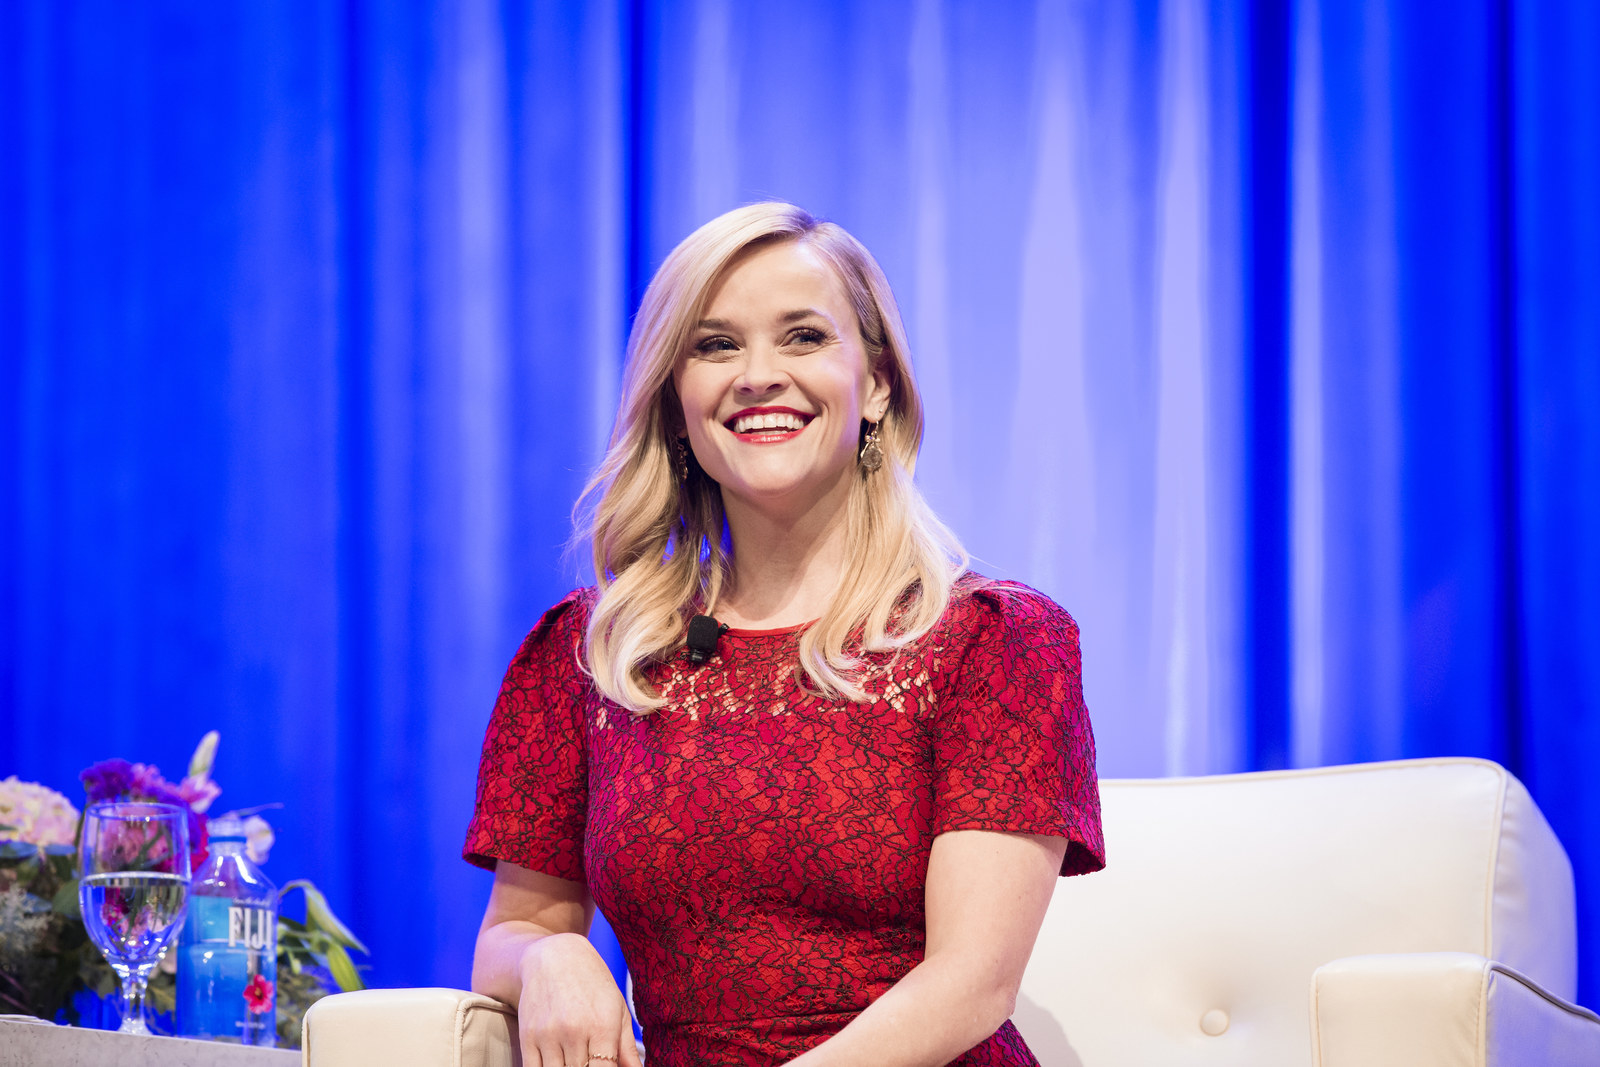 Reese Witherspoon is turning 43 on March 22.